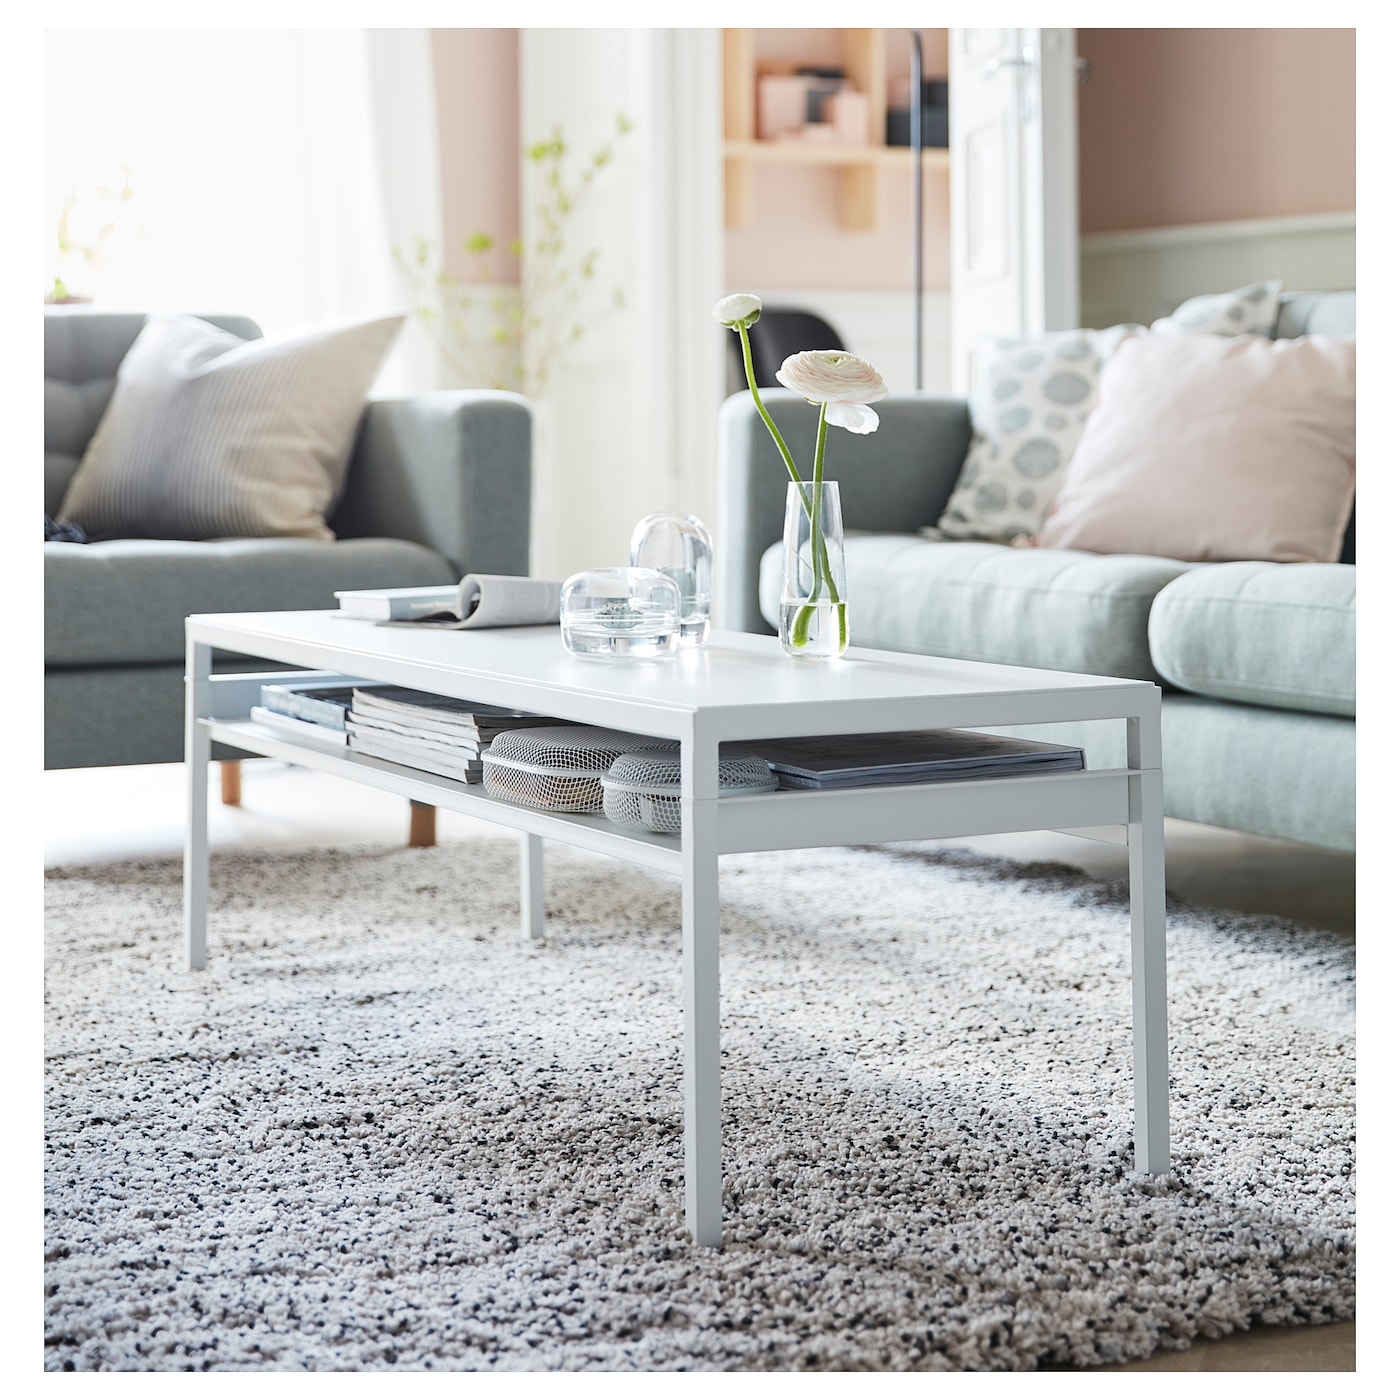 nyboda table basse avec plateau r versible blanc gris 120 x 40 x 40 cm ikea. Black Bedroom Furniture Sets. Home Design Ideas